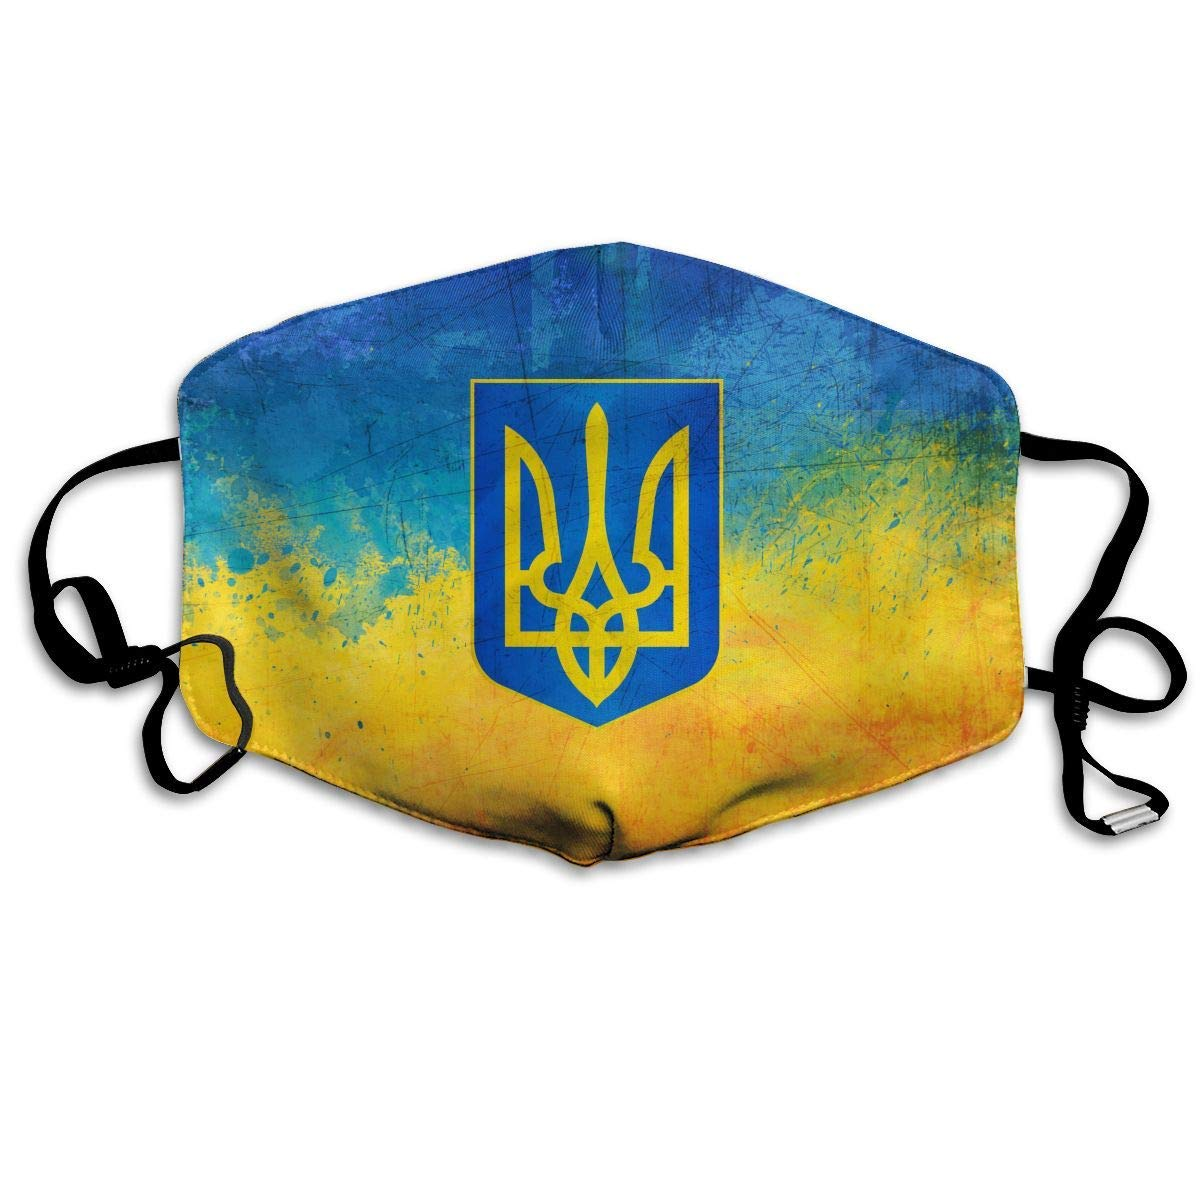 Daawqee Máscara de Boca, Ukrainian Paint Flag Unisex Creative Mascarilla Washable Safety 100% Polyester Comfortable Breathable Health Half Face Masks